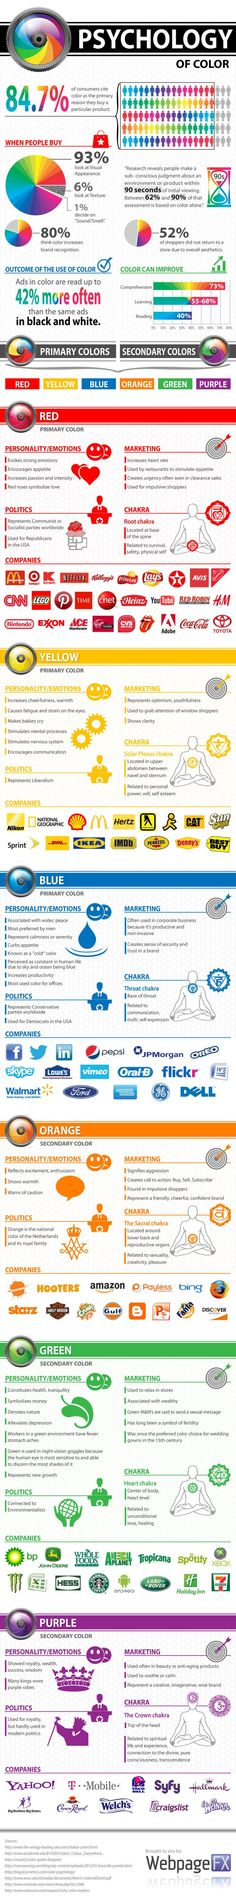 Psychology of Color [Infographic] A look at the psychological impact of color on design, politics, marketing and more.